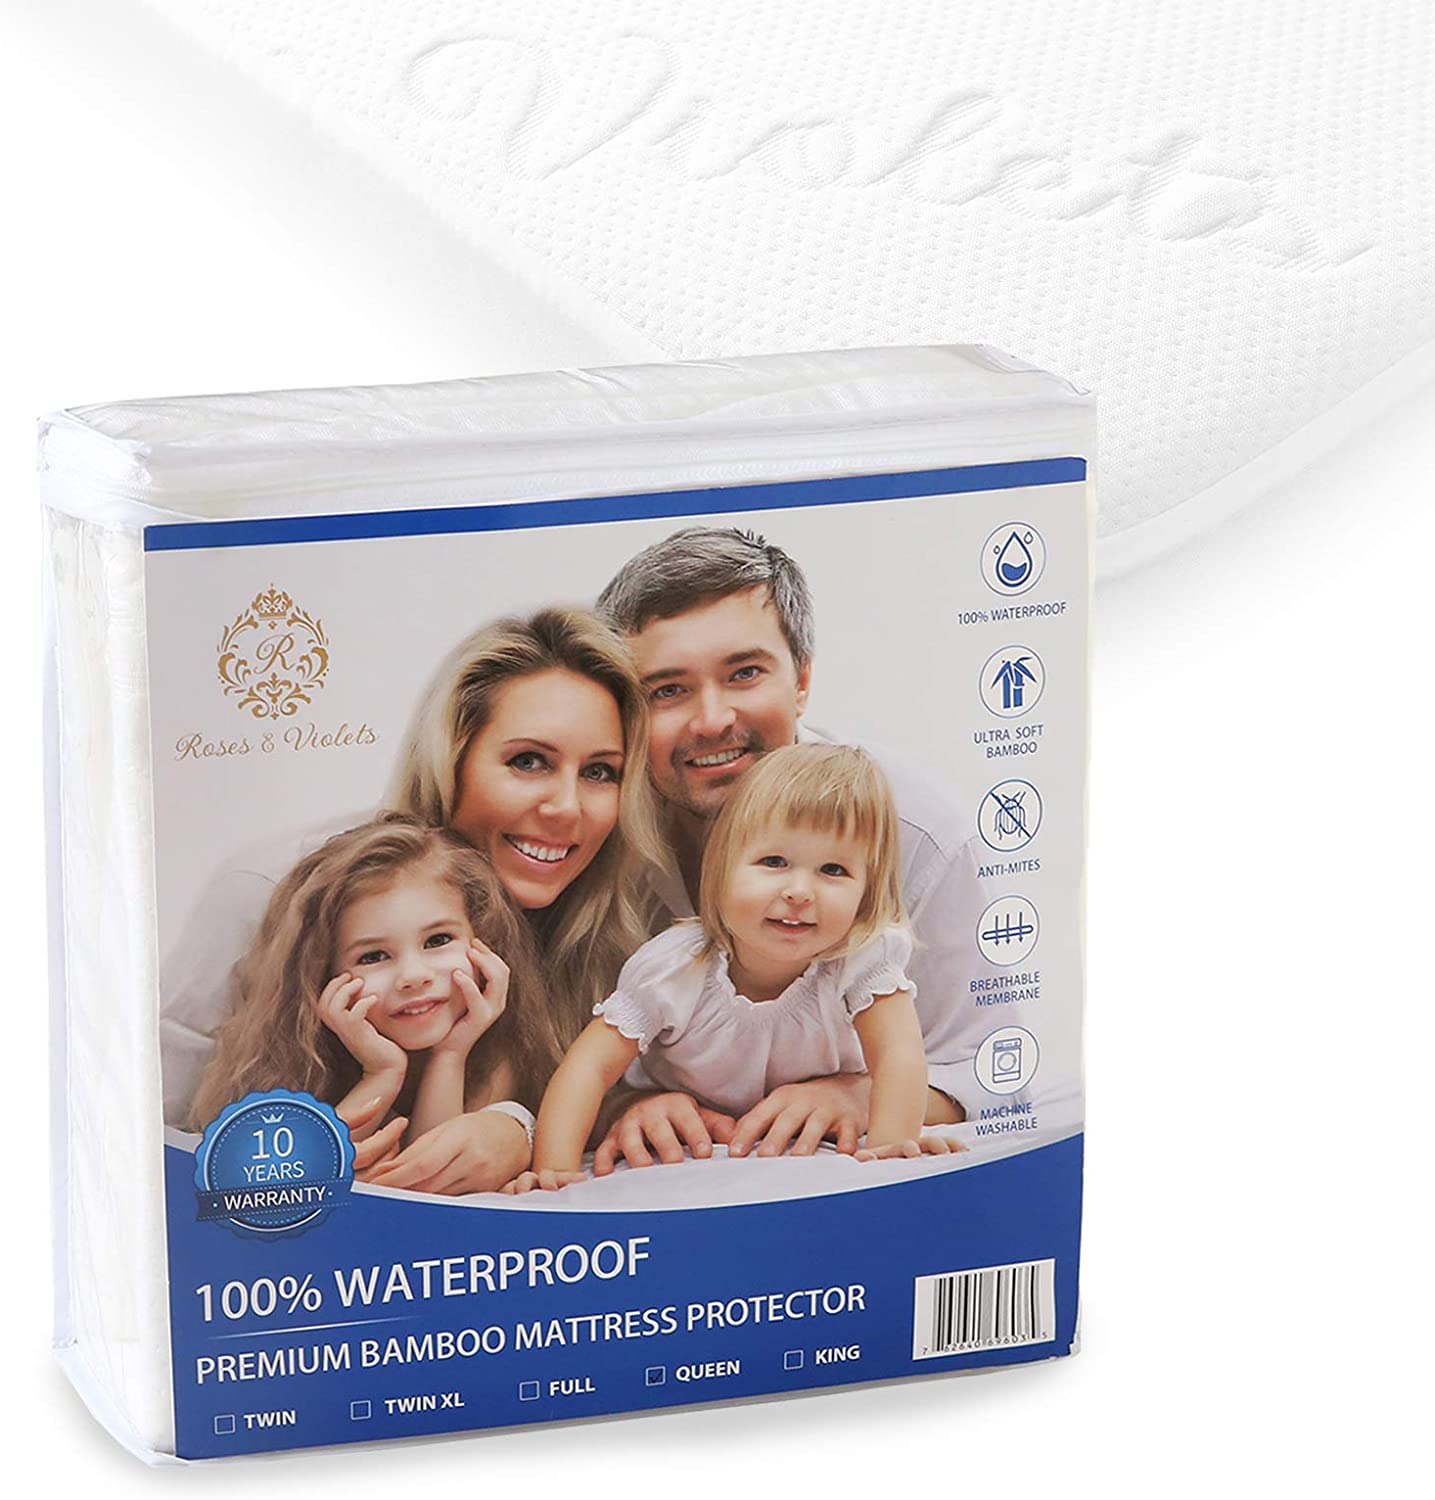 Roses and Violets Full Mattress Waterproof Bed Cover